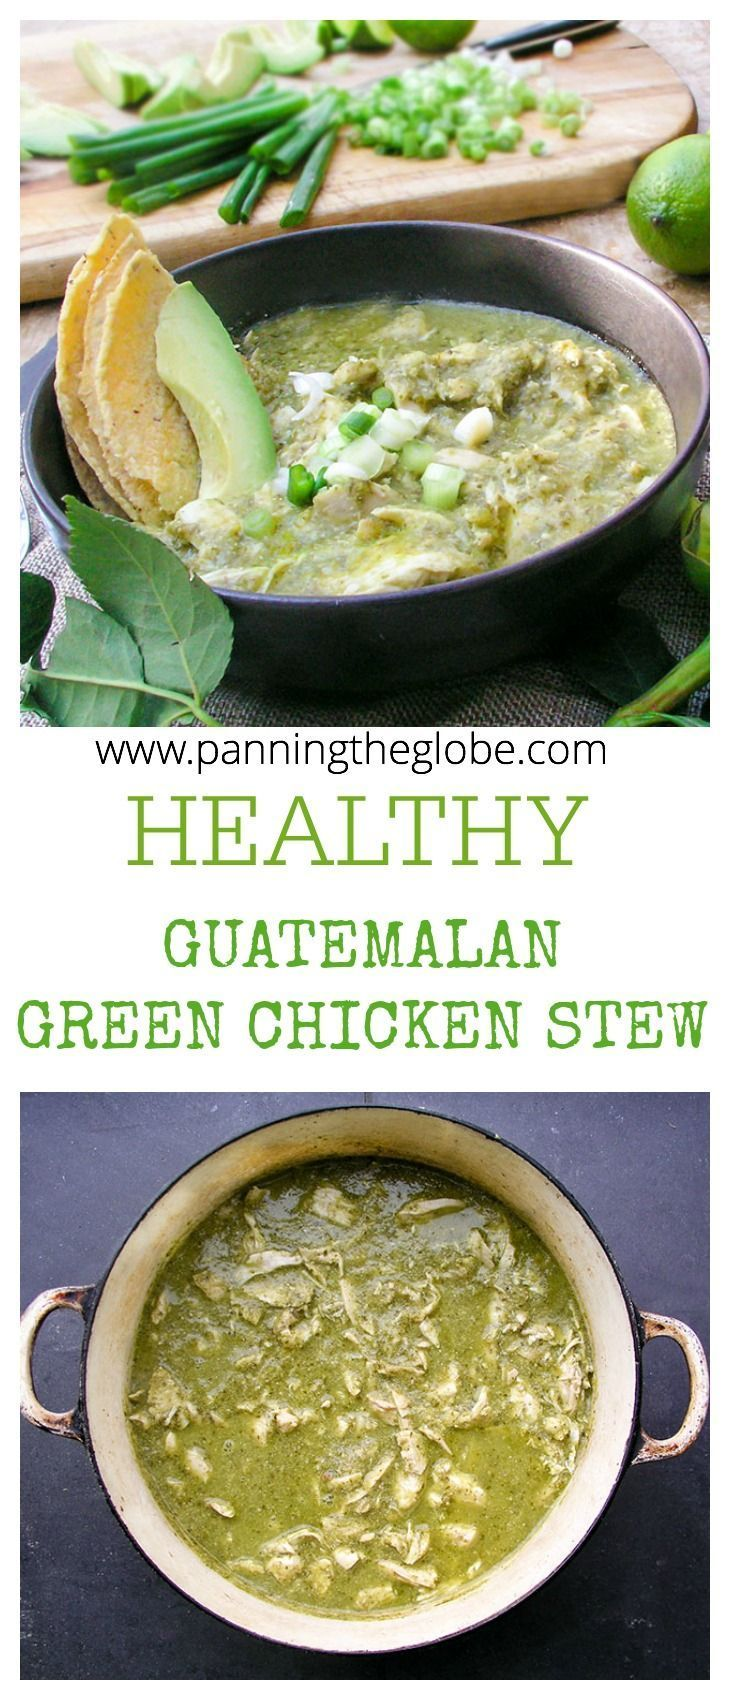 Guatemalan Green Chicken Stew: A healthy, delicious stew of tender shredded chicken simmered in a fresh tangy tomatillo-cilantro sauce, thickened with ground toasted pumpkin seeds and sesame seeds. #glutenfree